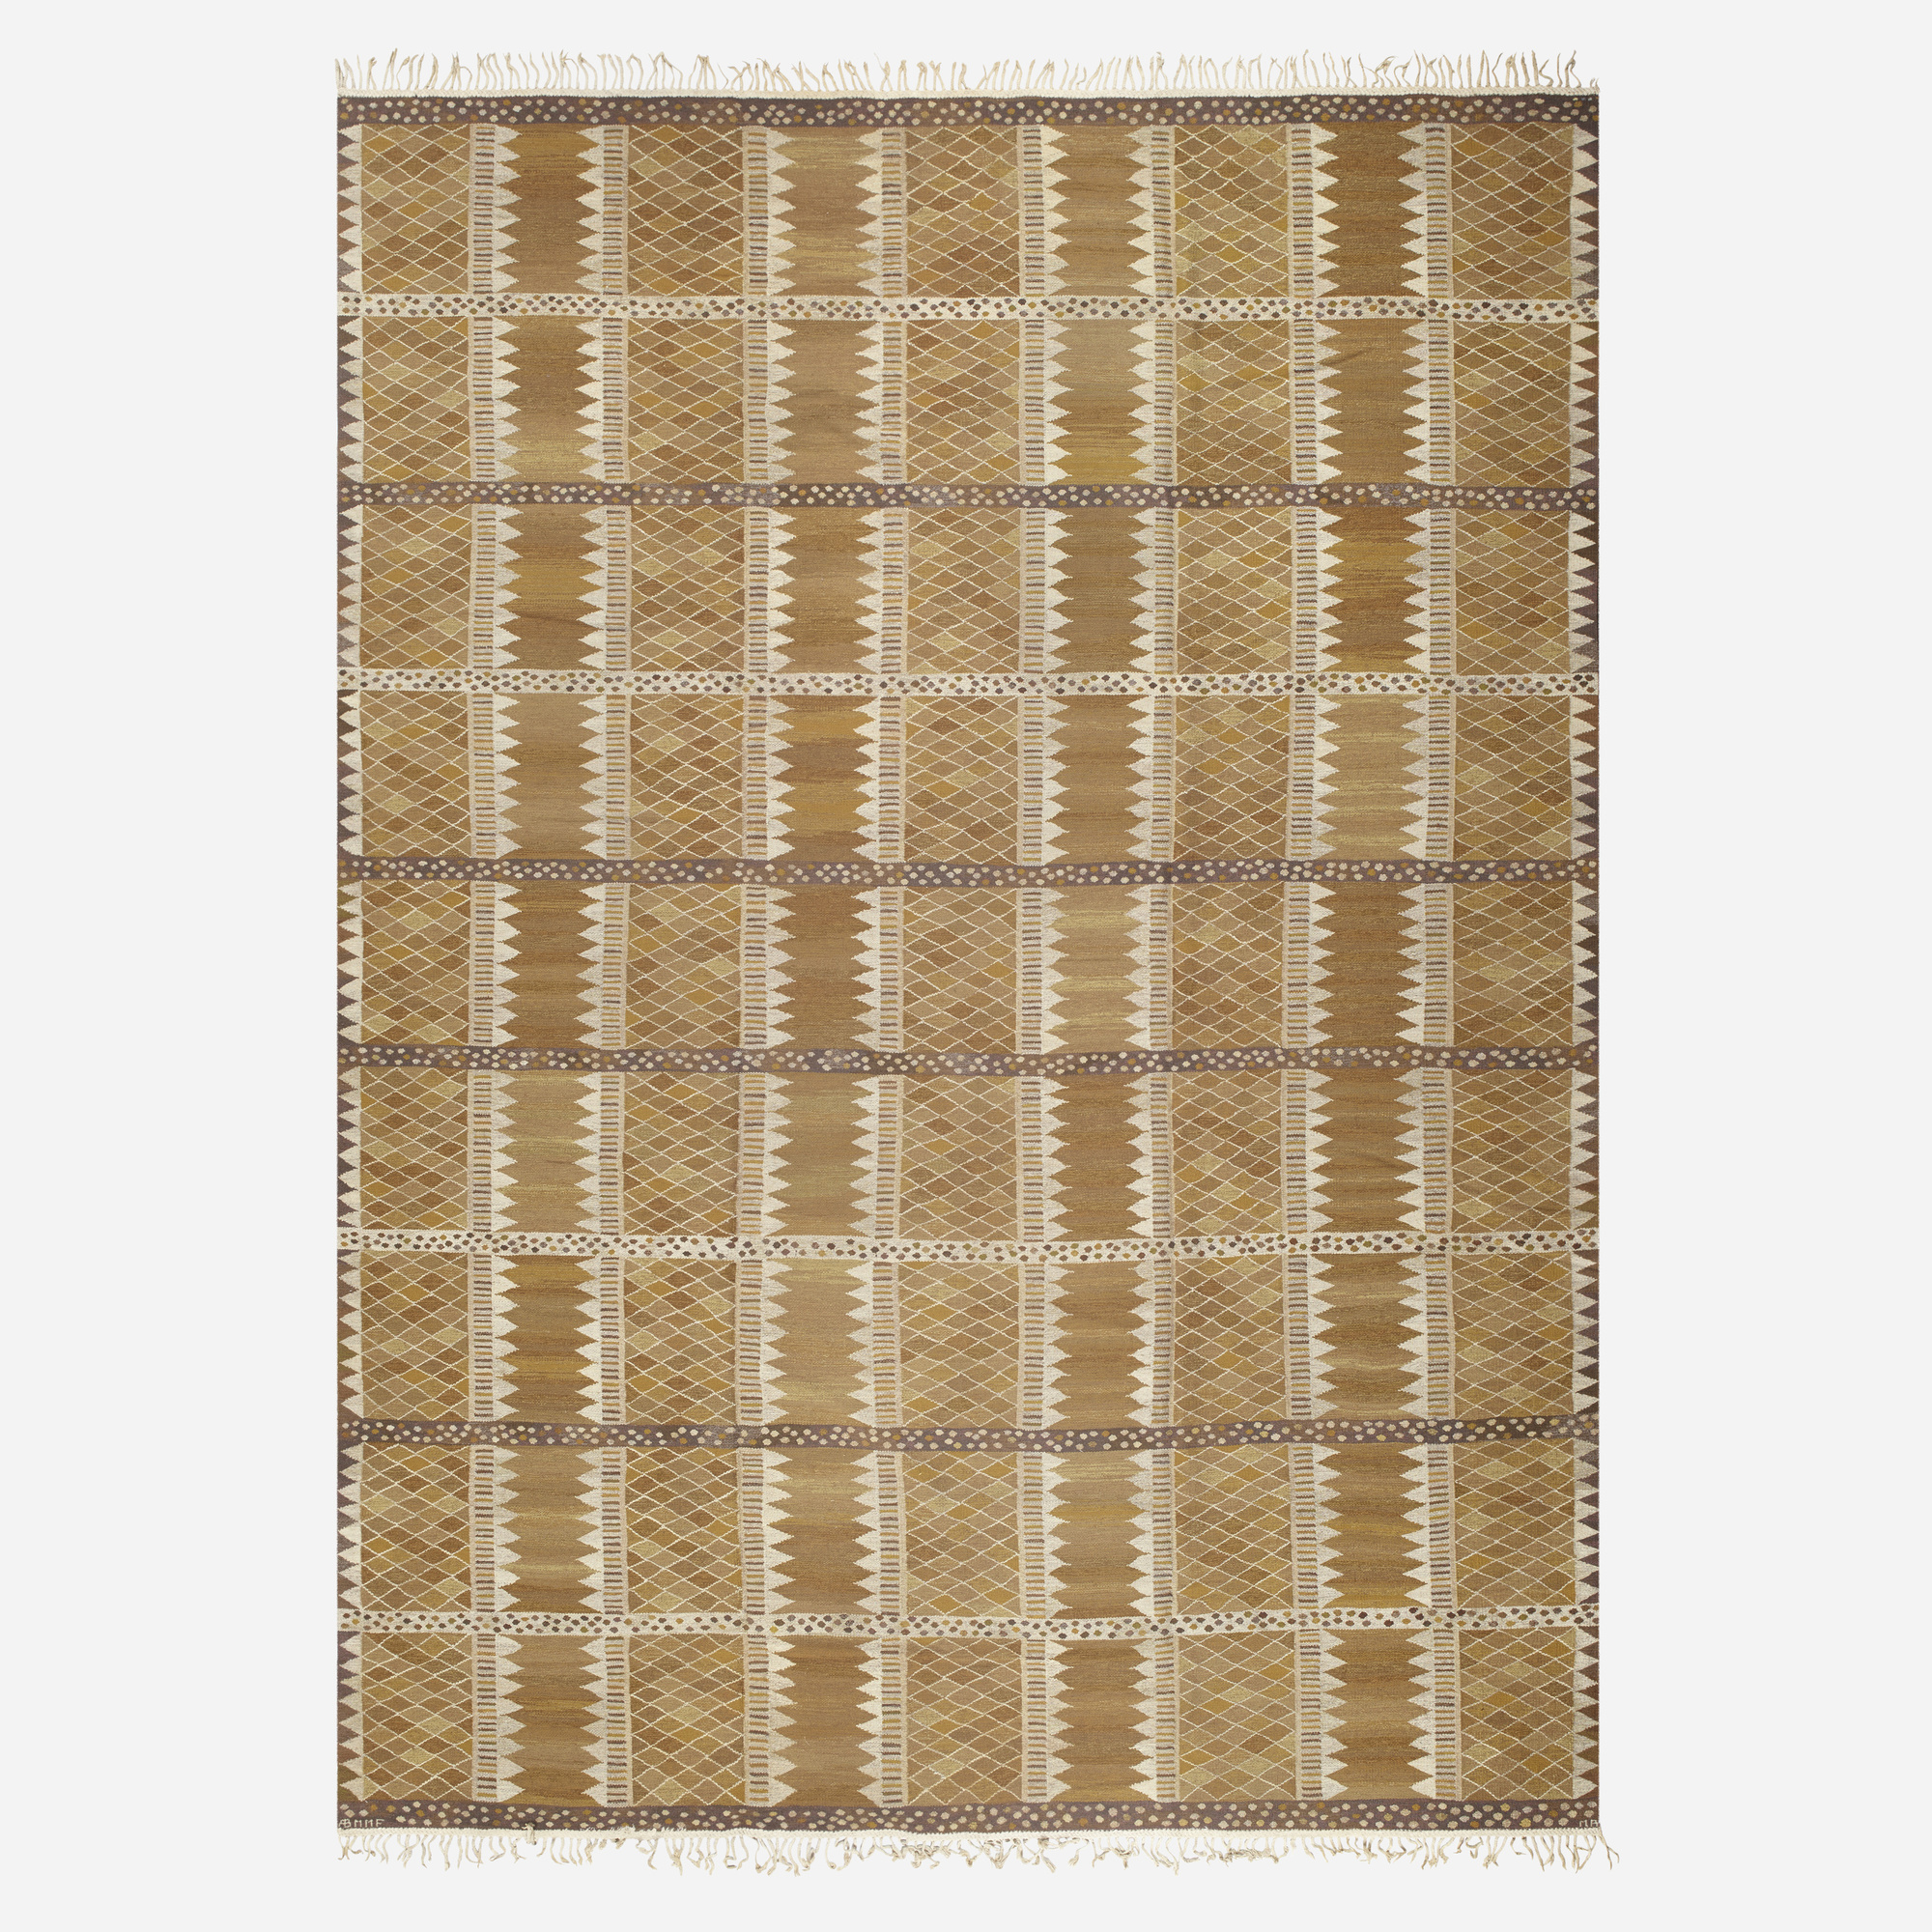 140: Marianne Richter / Josefina tapestry weave carpet (1 of 2)